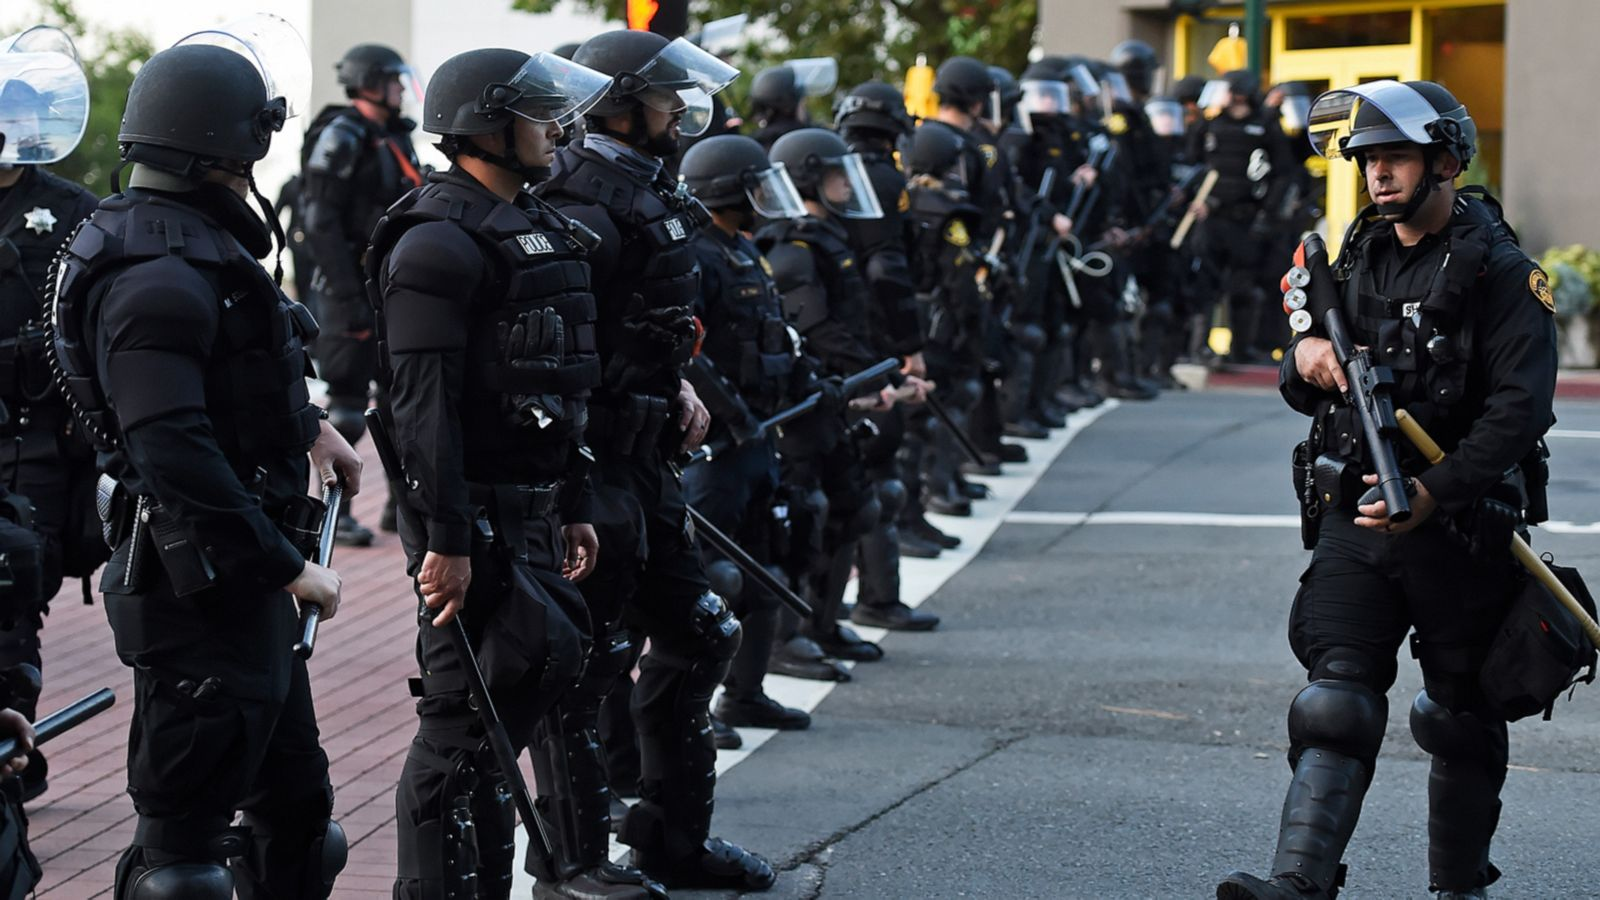 FiveThirtyEight Politics Podcast: The data behind police violence